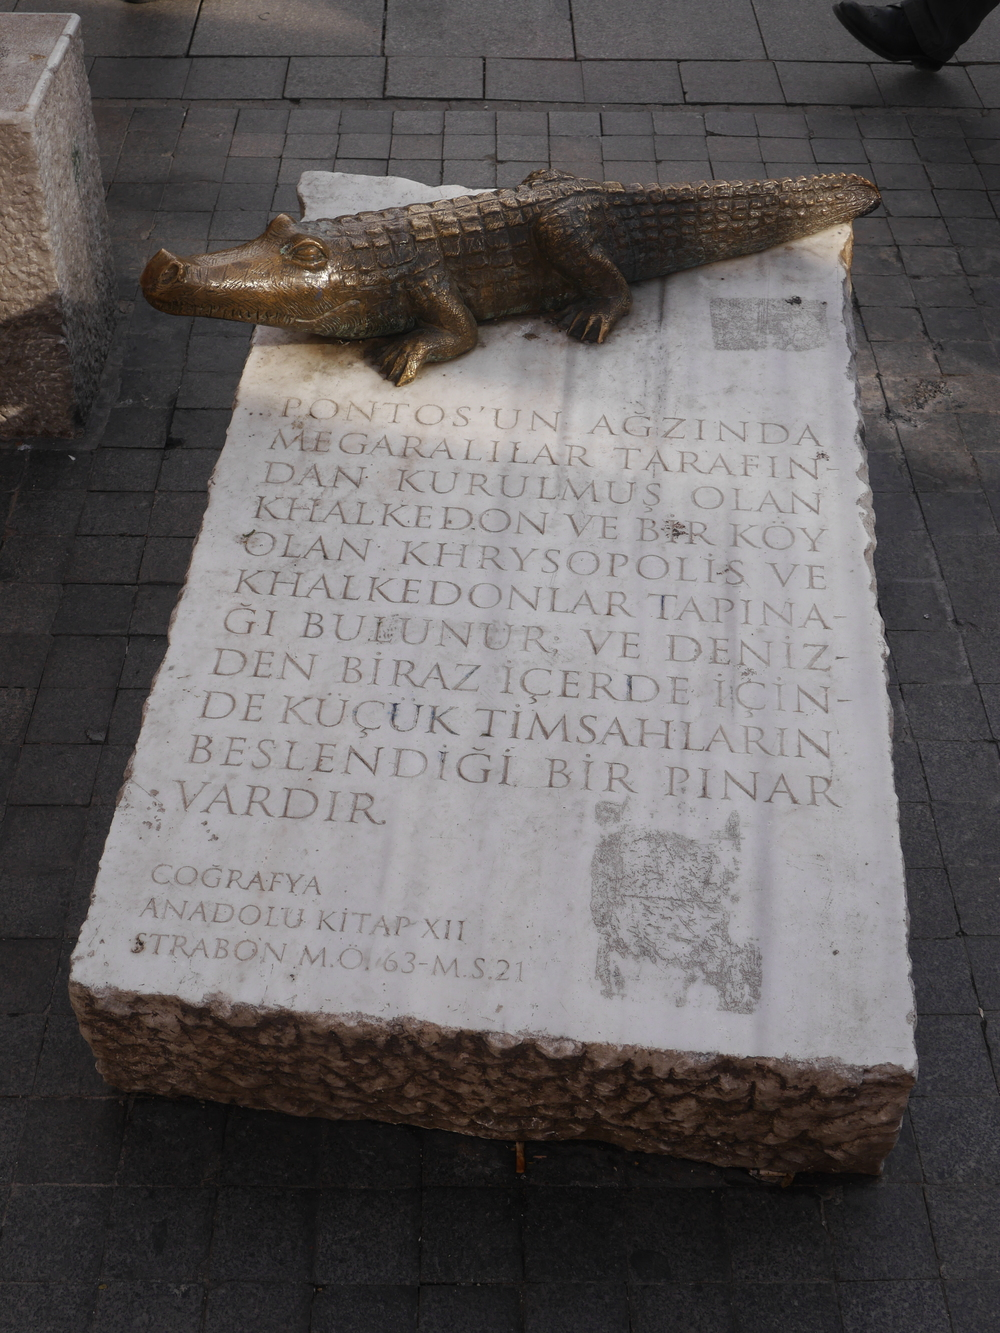 An alligator (or crocodile - I should really know the diference) of, I imagine, some significance.